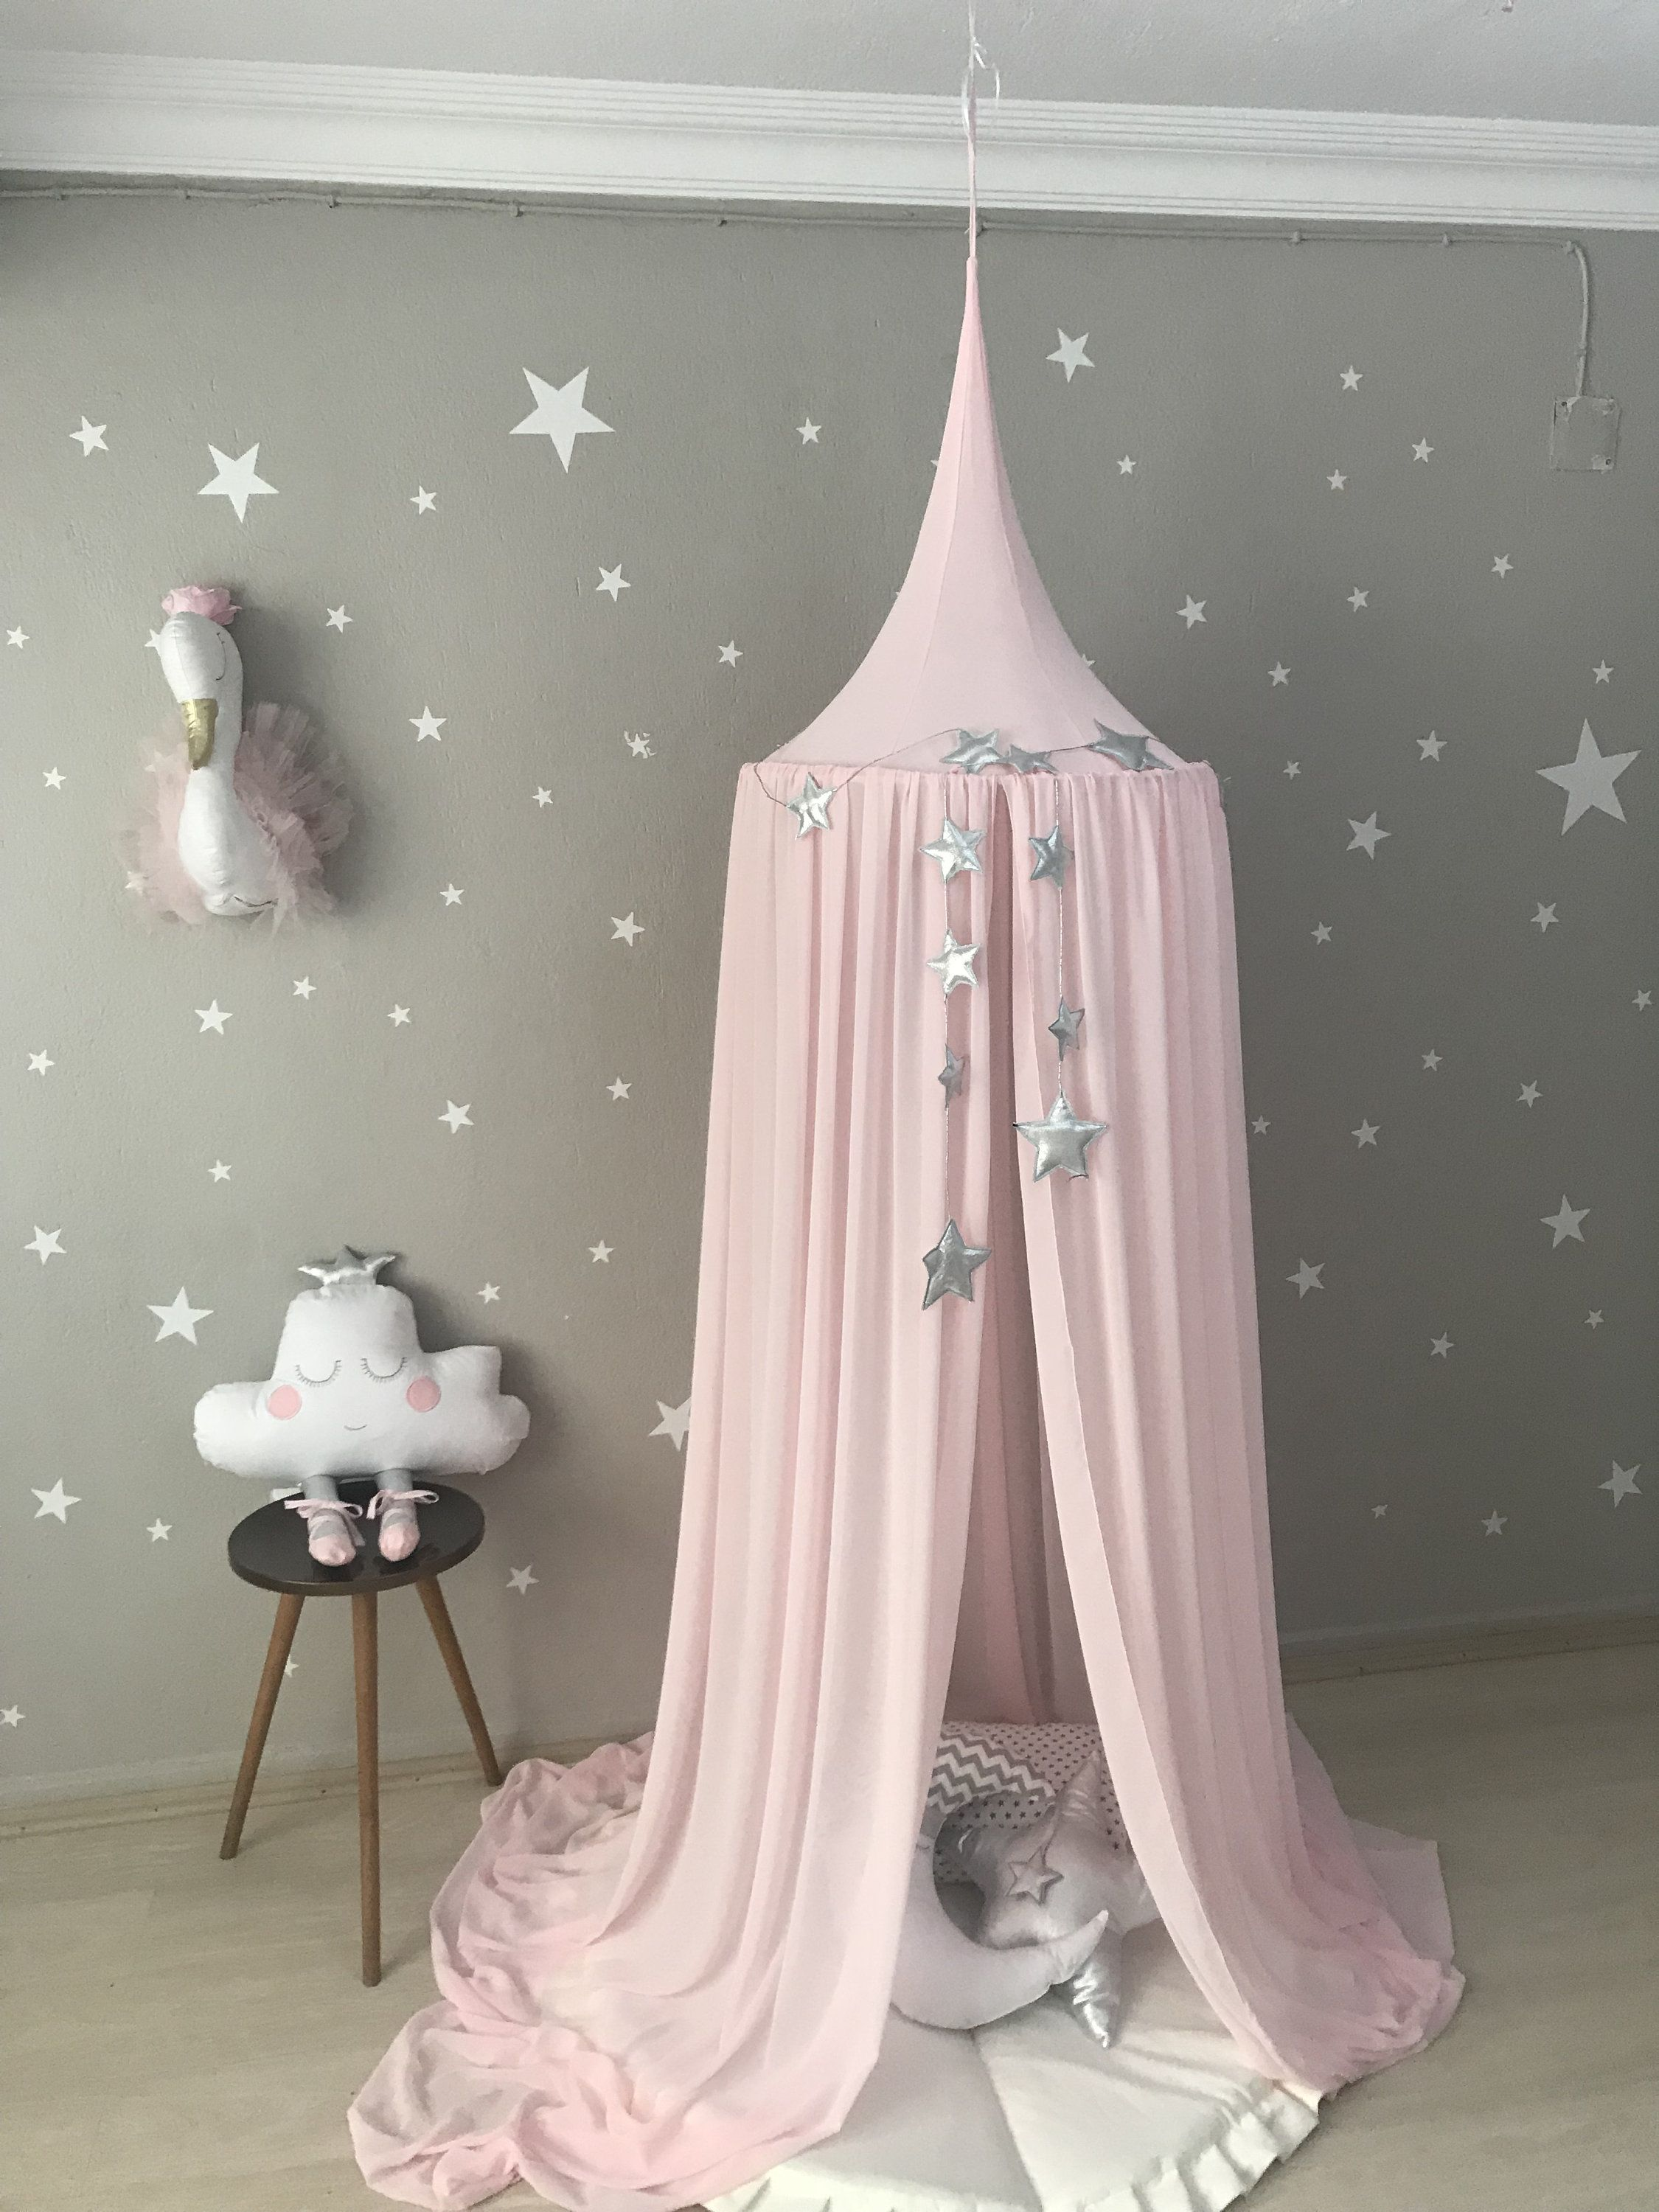 Photo of Pink Canopy, Chiffion baldachin, Ceiling Hanging Tent, Canopy for Nursery Kids, Reading Nook Tent, Bed Canopy, Crib canopy,Princess Canopy